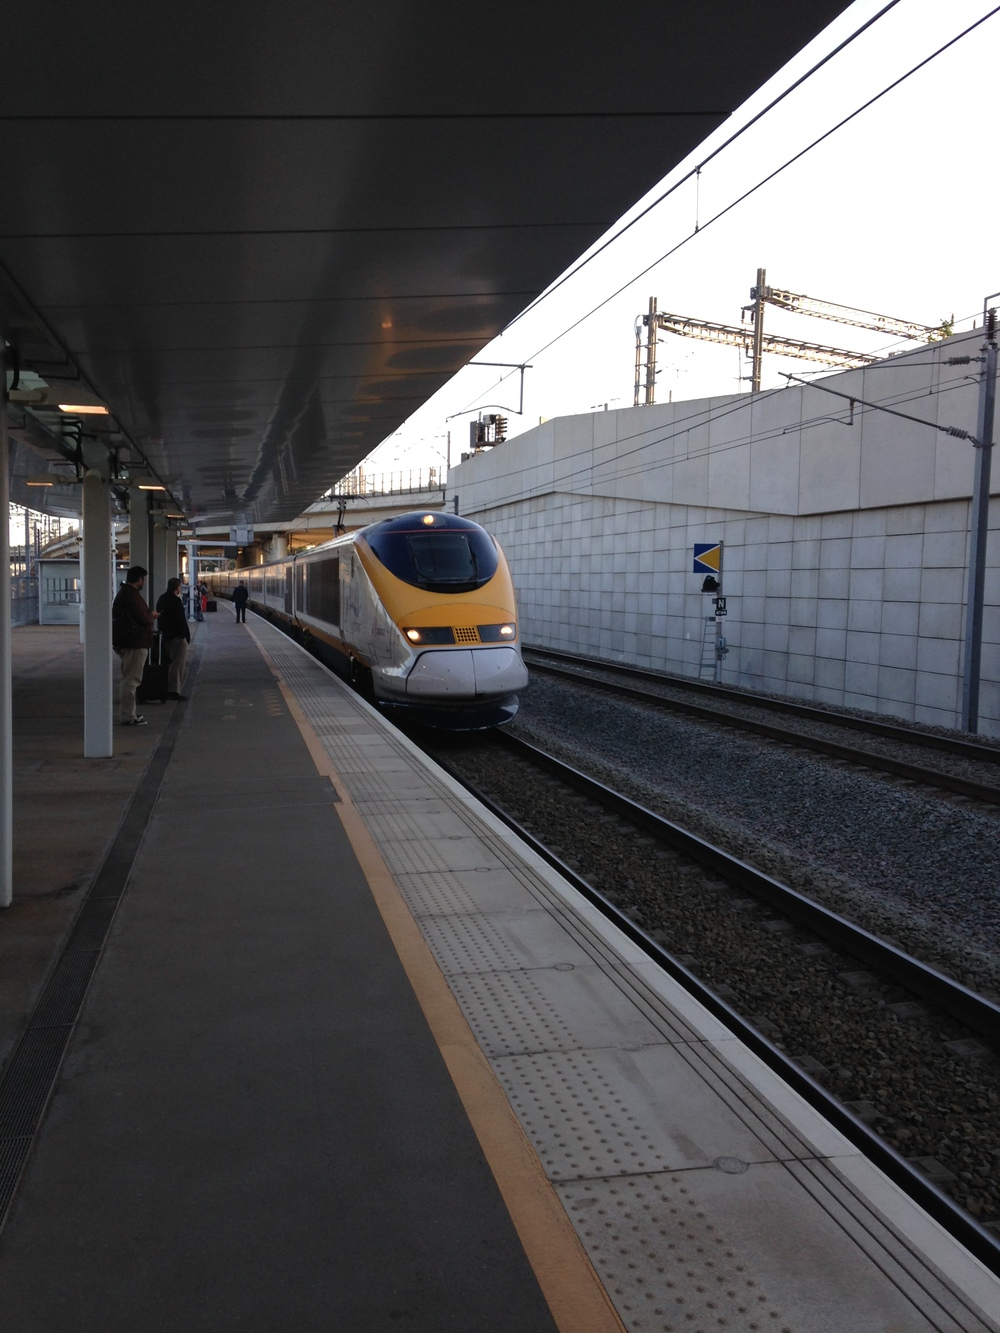 The early morning Eurostar from Ebbsfleet.